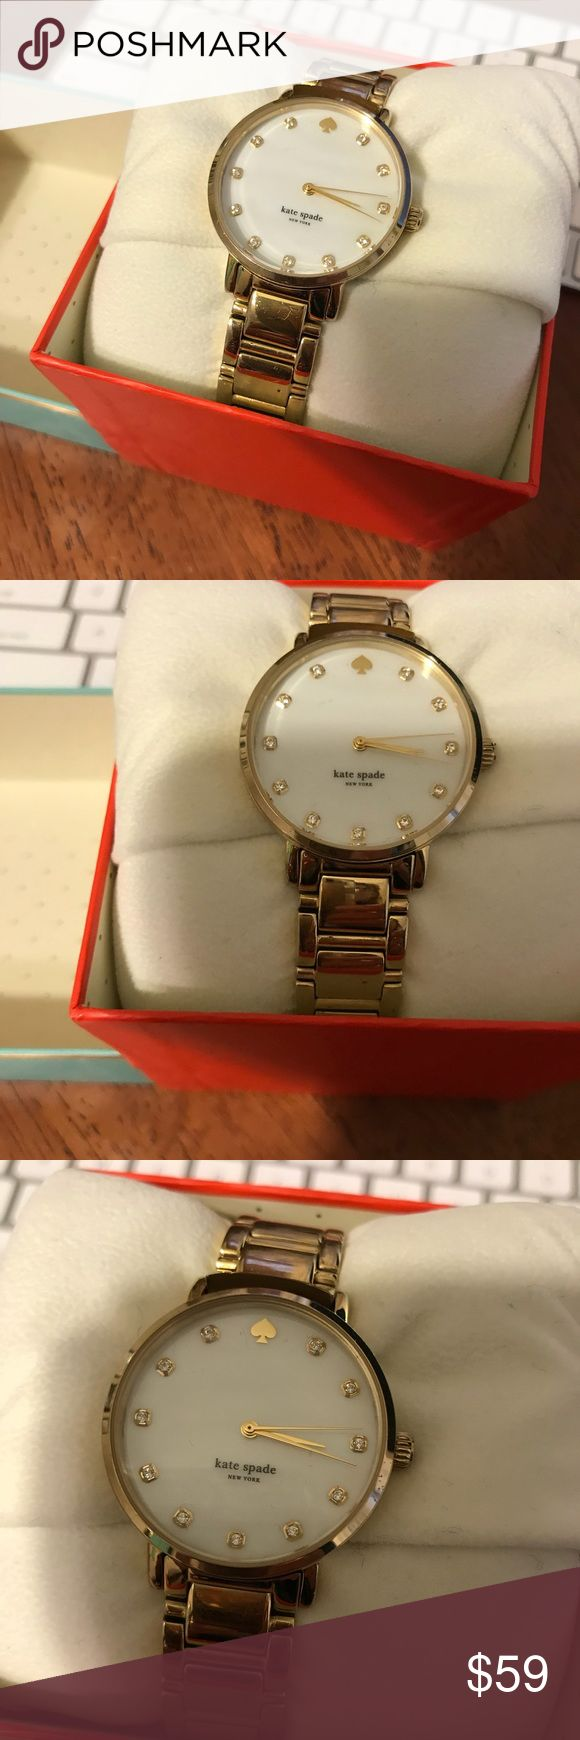 Kate Spade gramercy watch gold Pre owned good condition Kate Spade gramercy watch in gold kate spade Accessories Watches